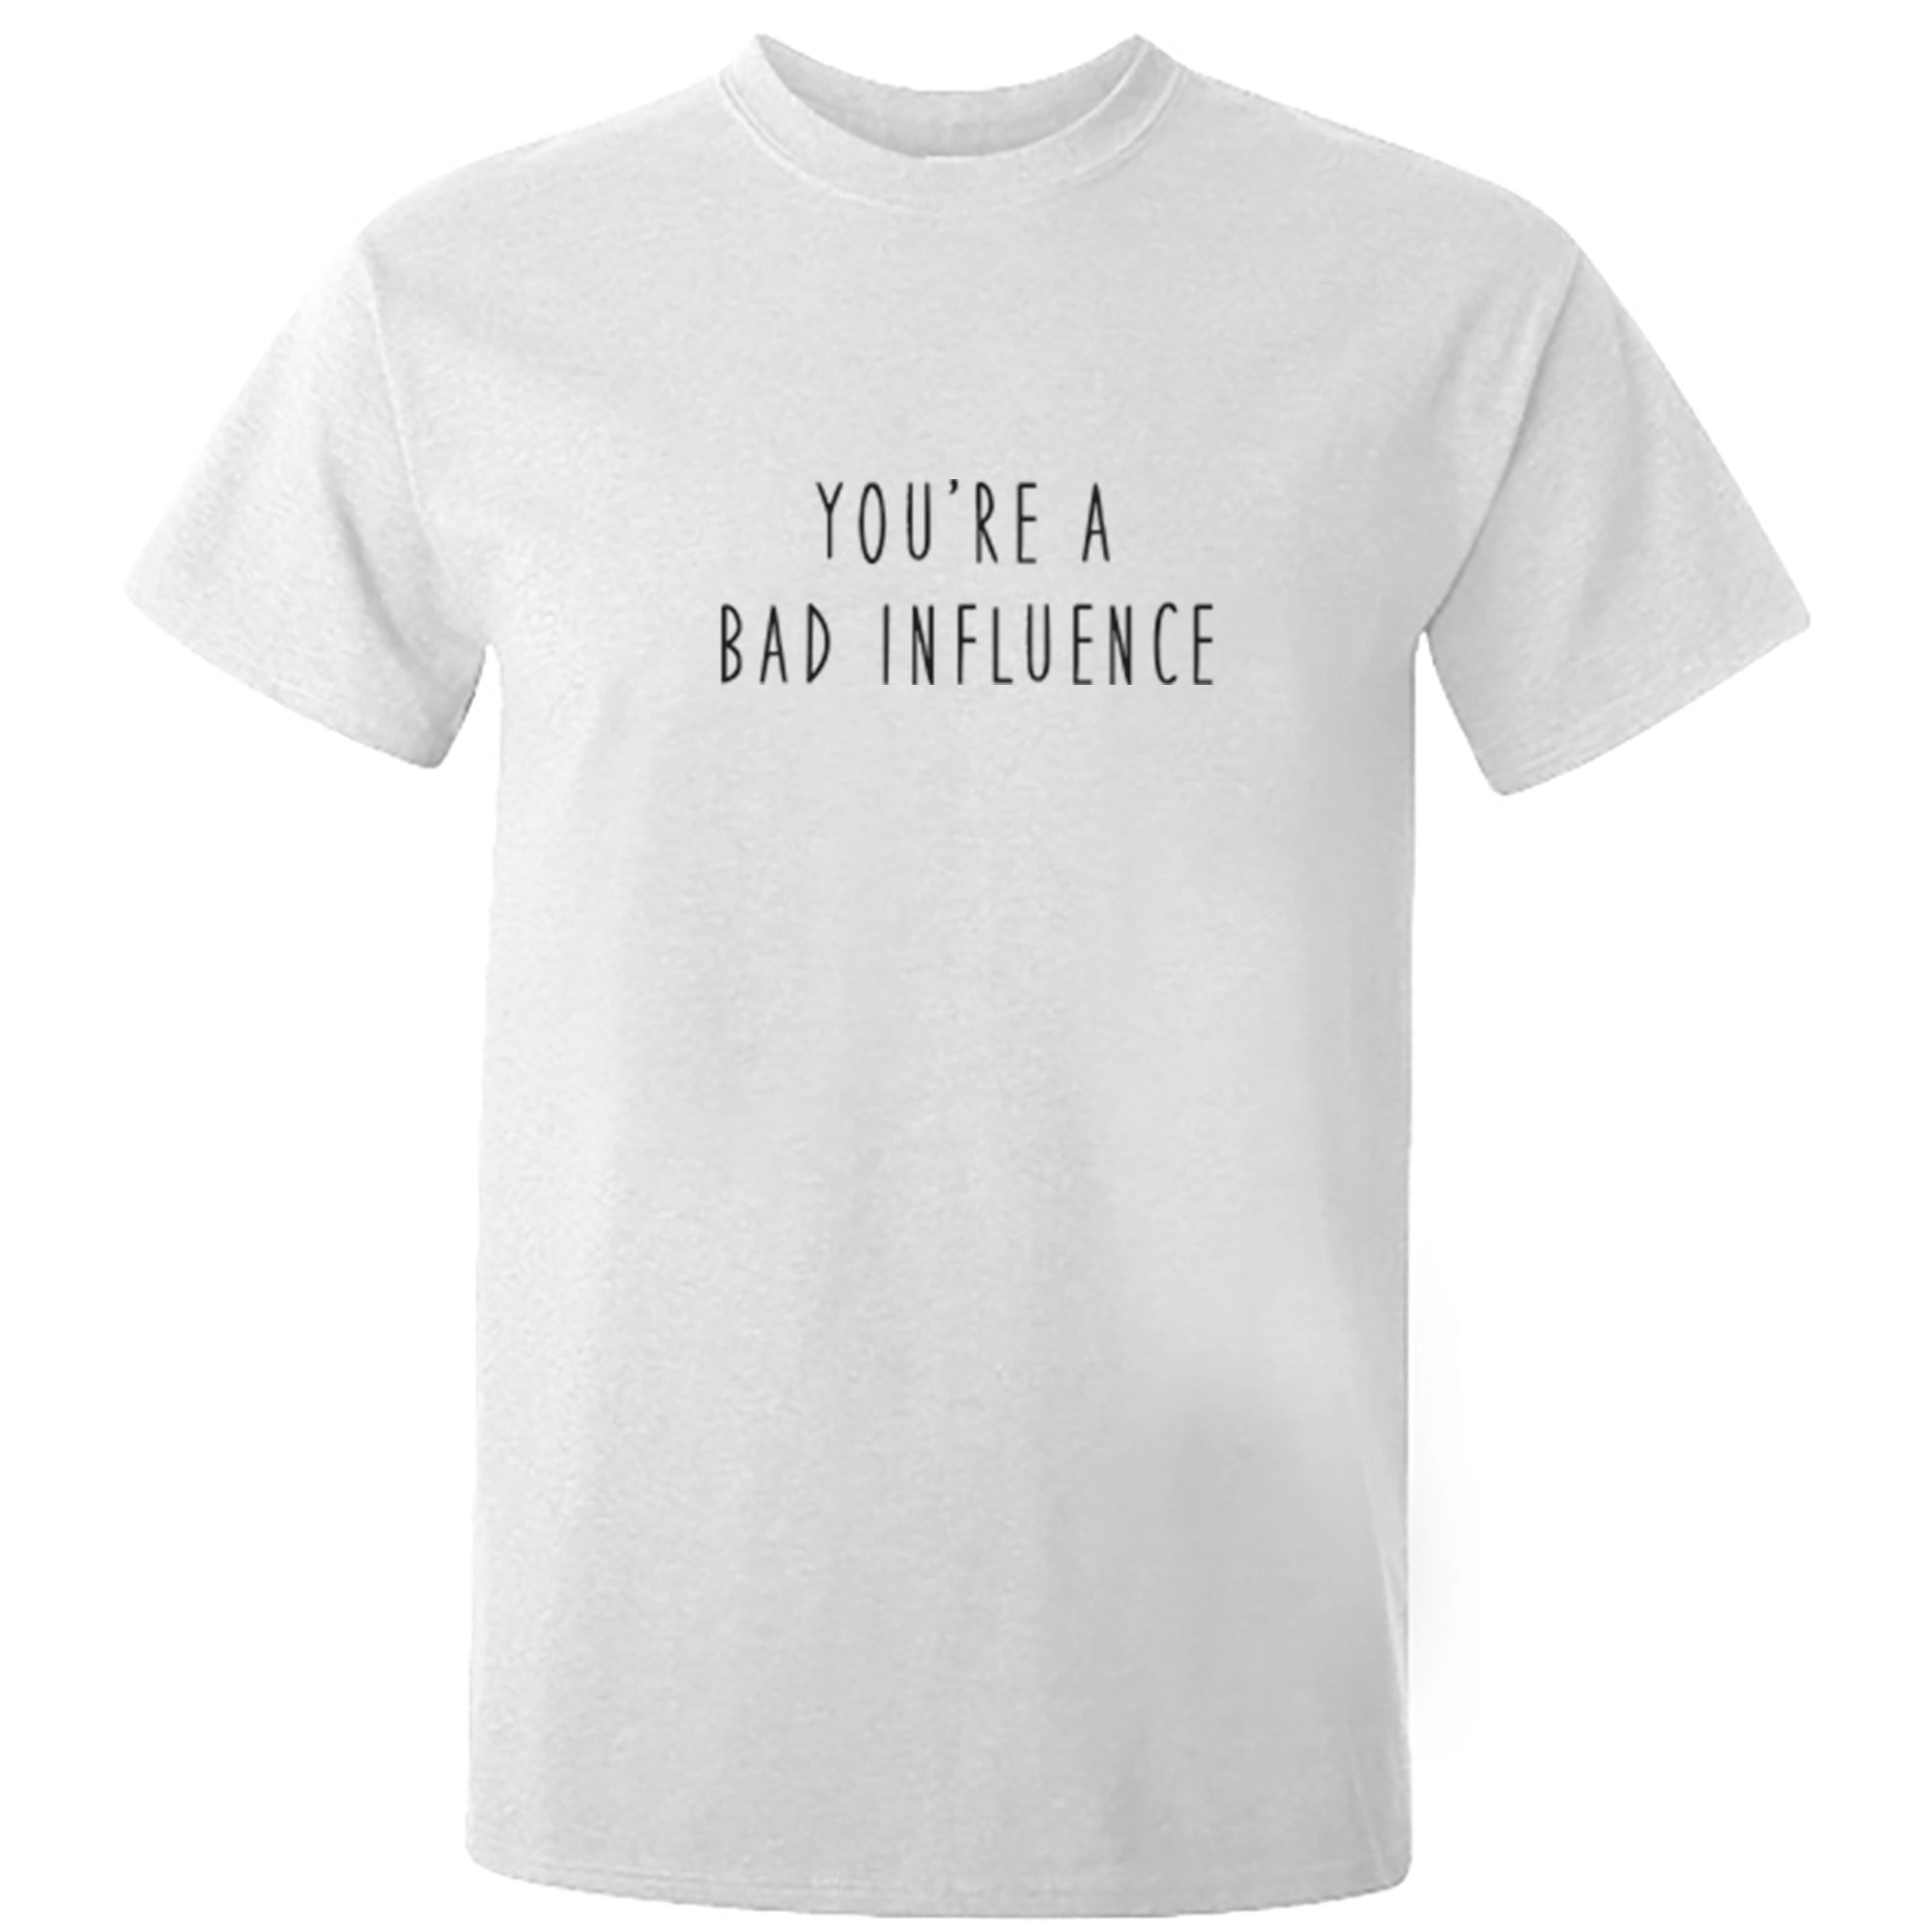 You're A Bad Influence Unisex Fit T-Shirt S0992 - Illustrated Identity Ltd.